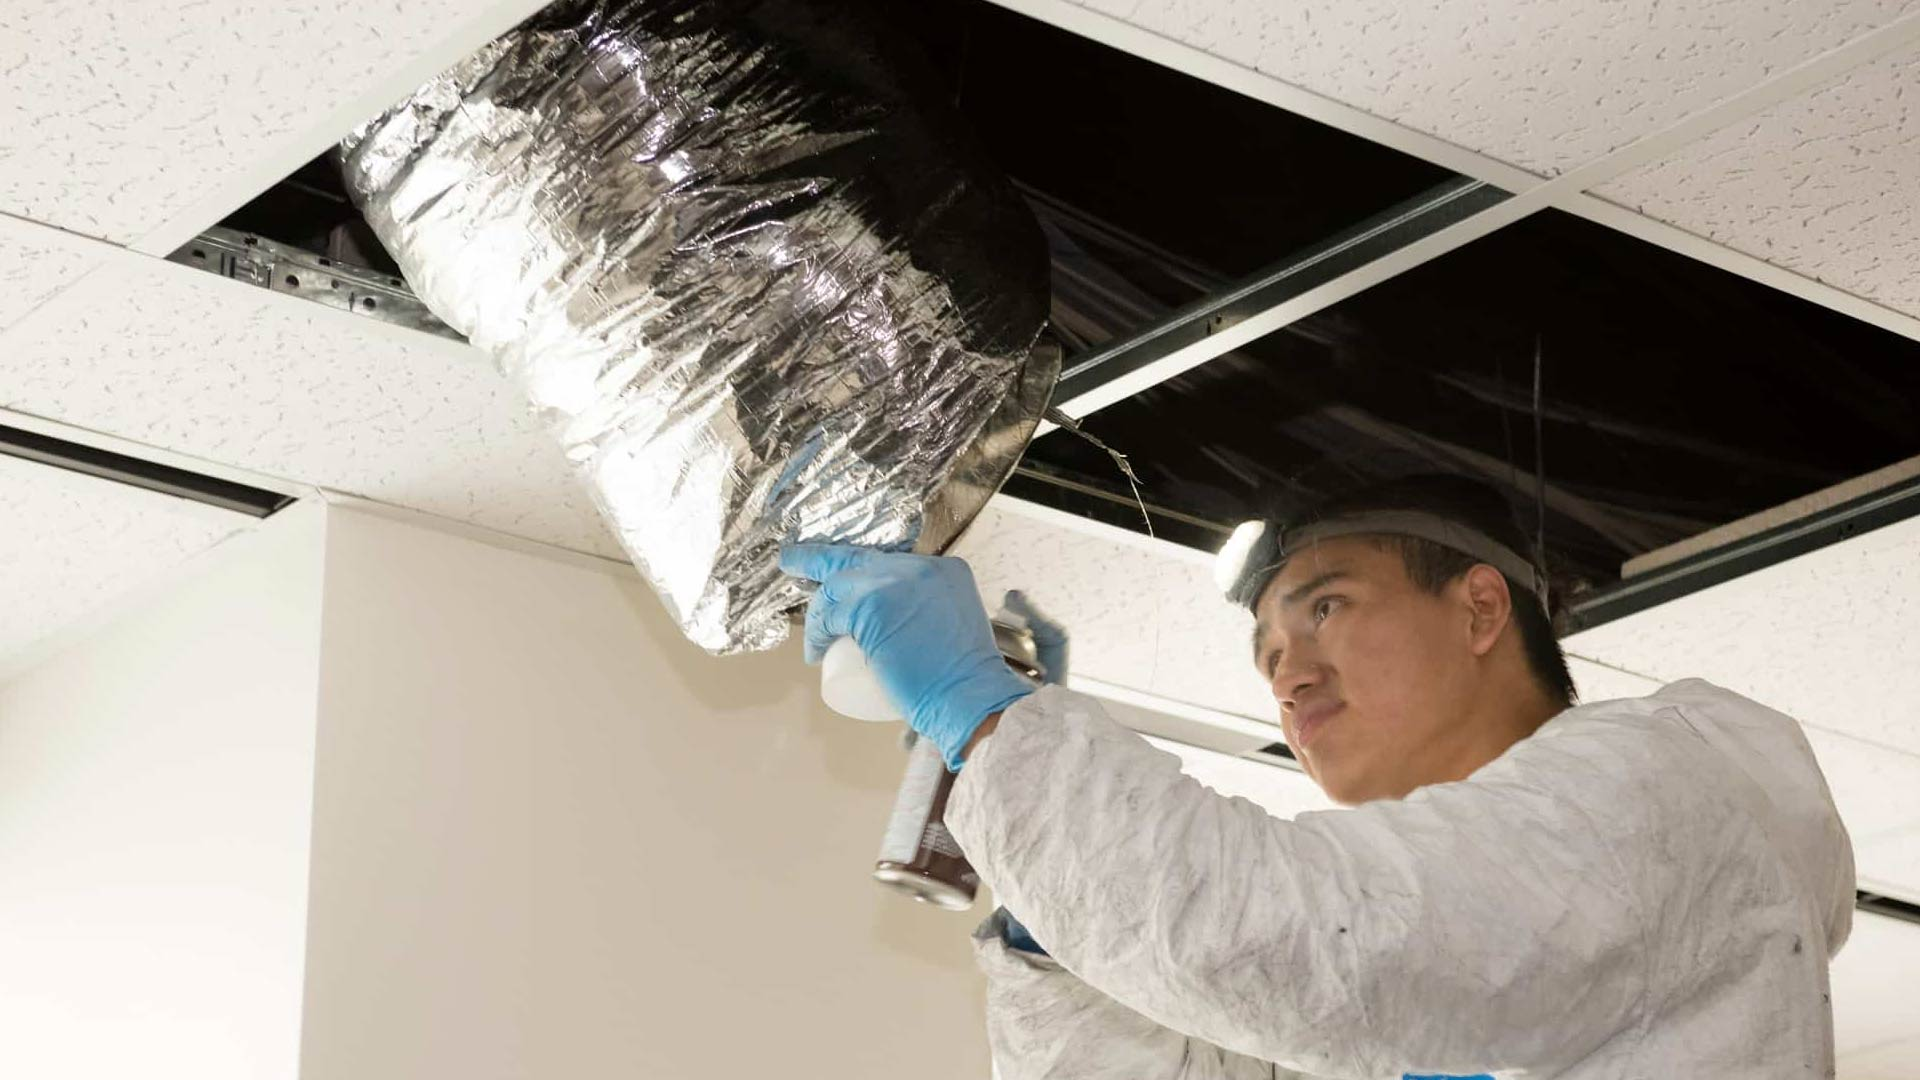 Commercial Air Duct Cleaning Near Me | S & R Air Duct Cleaning Services